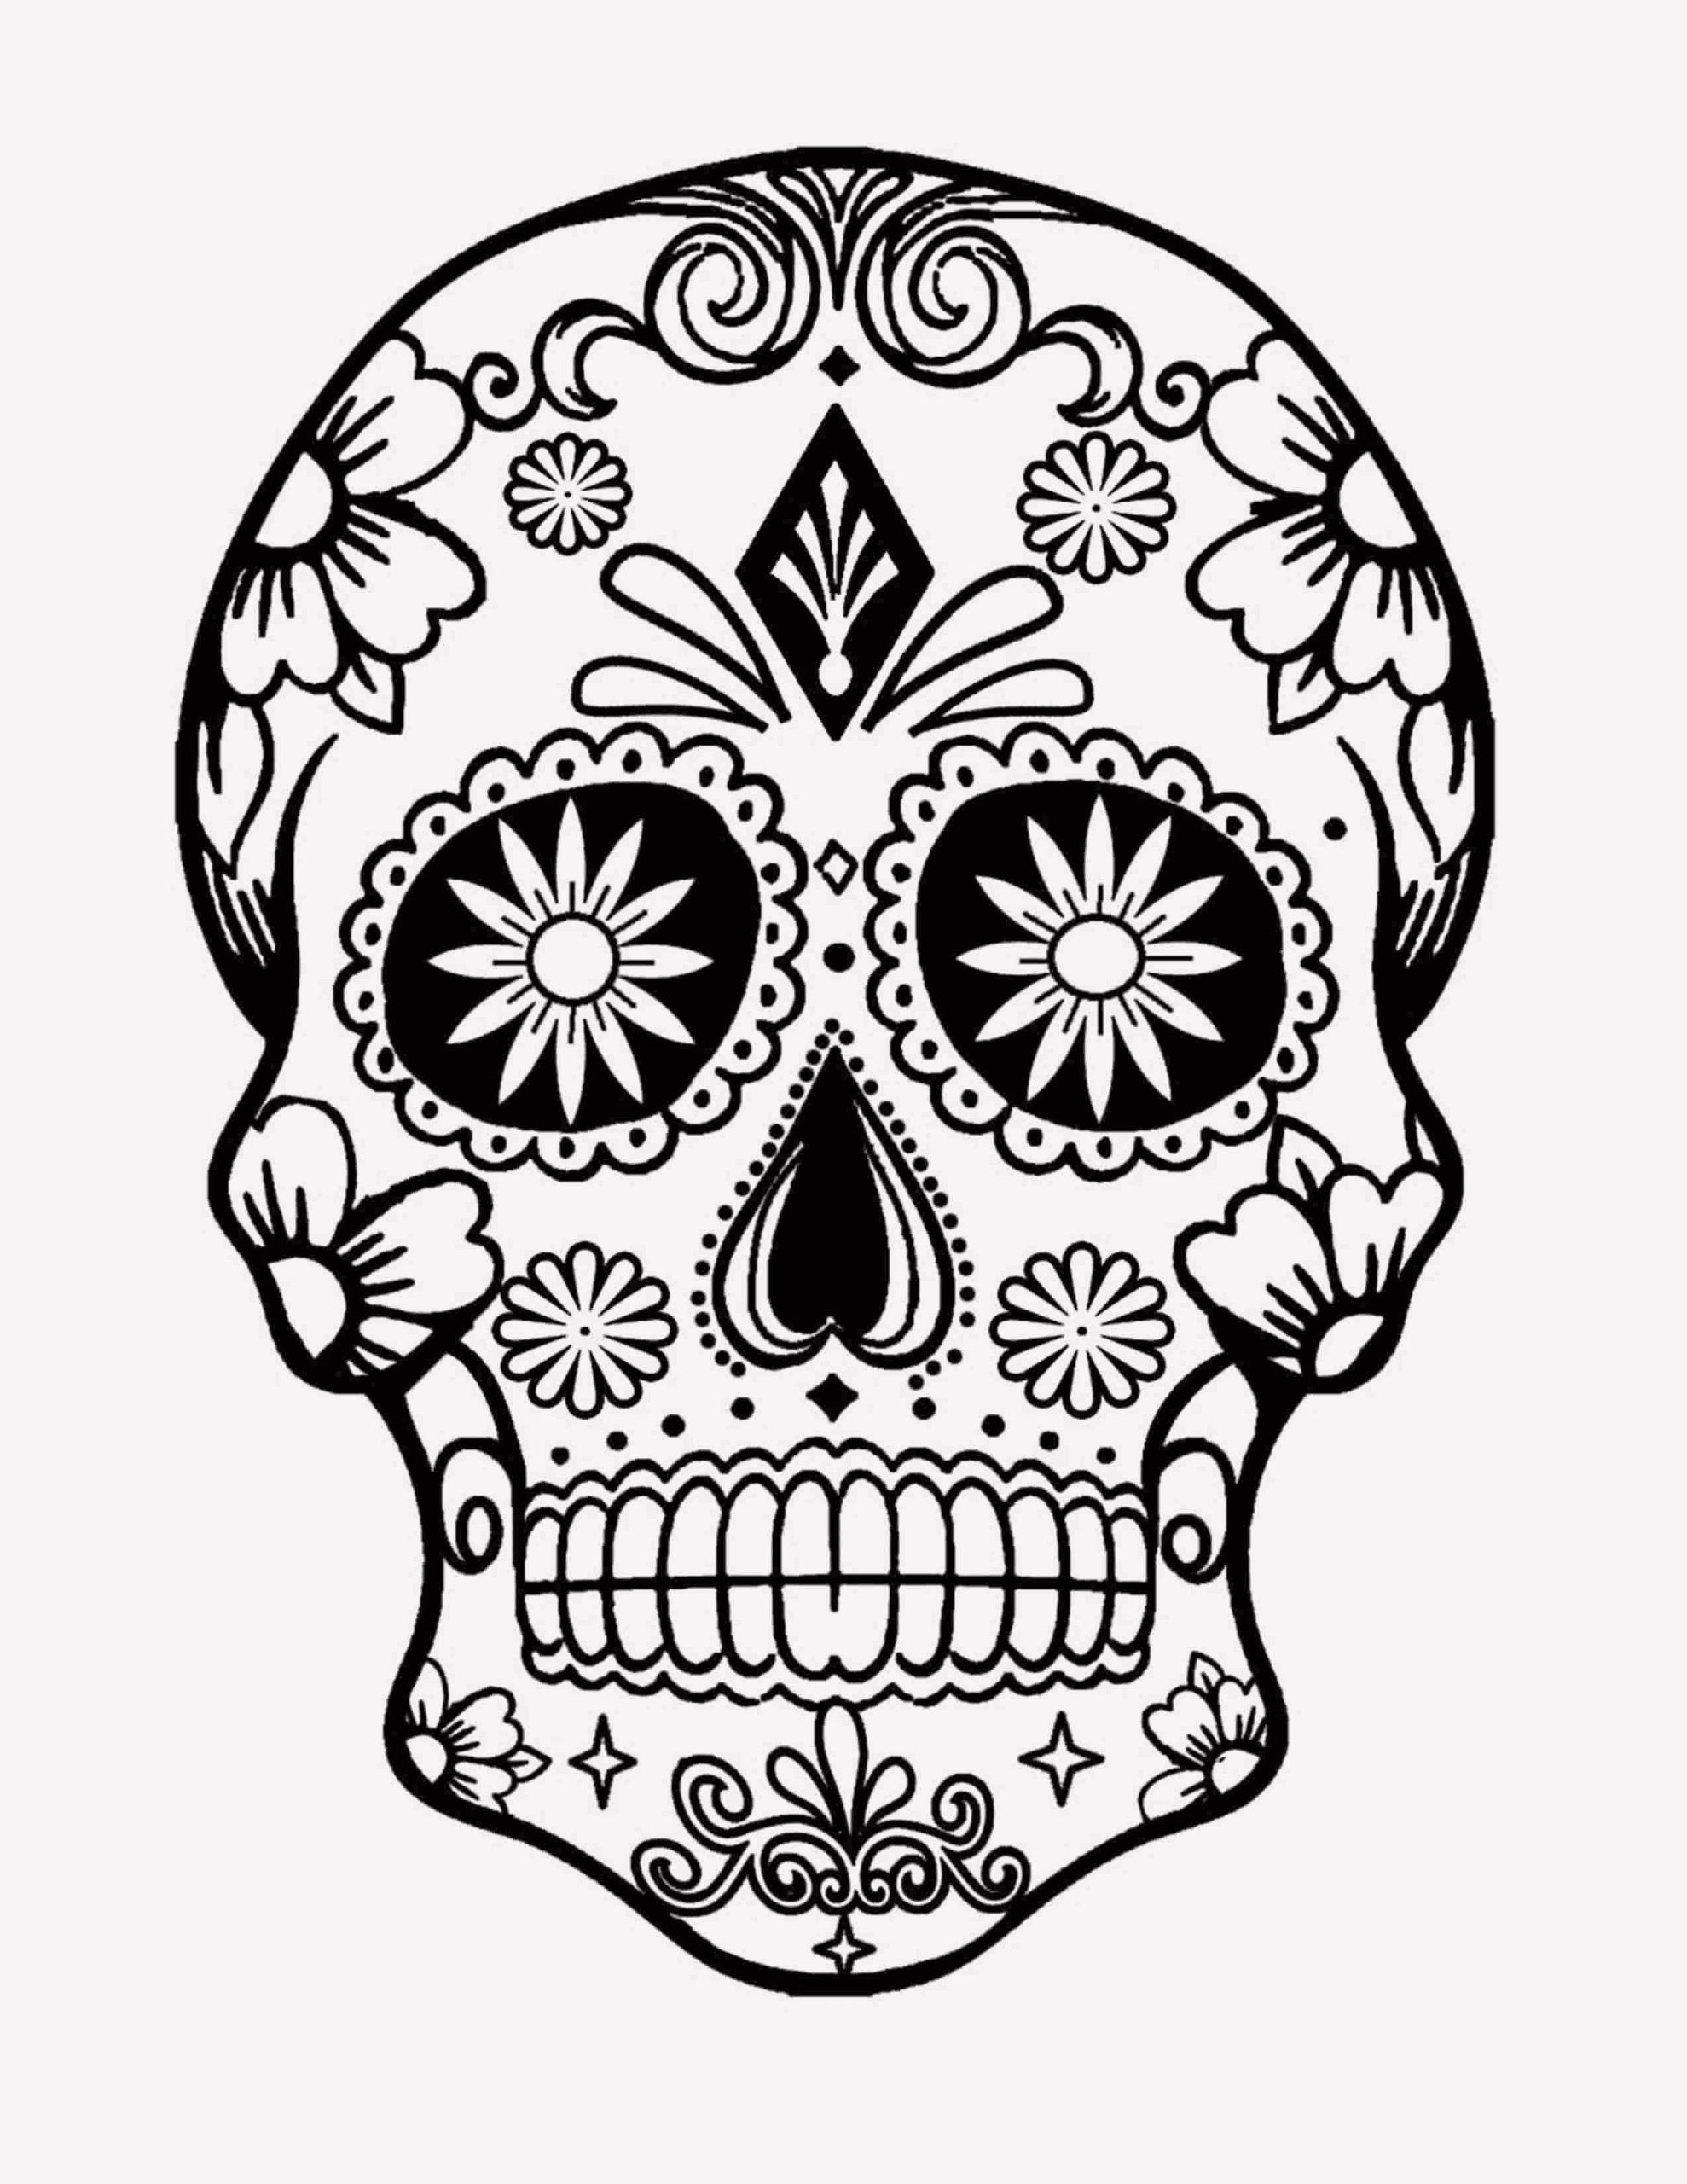 15 Badass Skull Coloring Pages In 2020 Skull Coloring Pages Mandala Coloring Pages Owl Coloring Pages